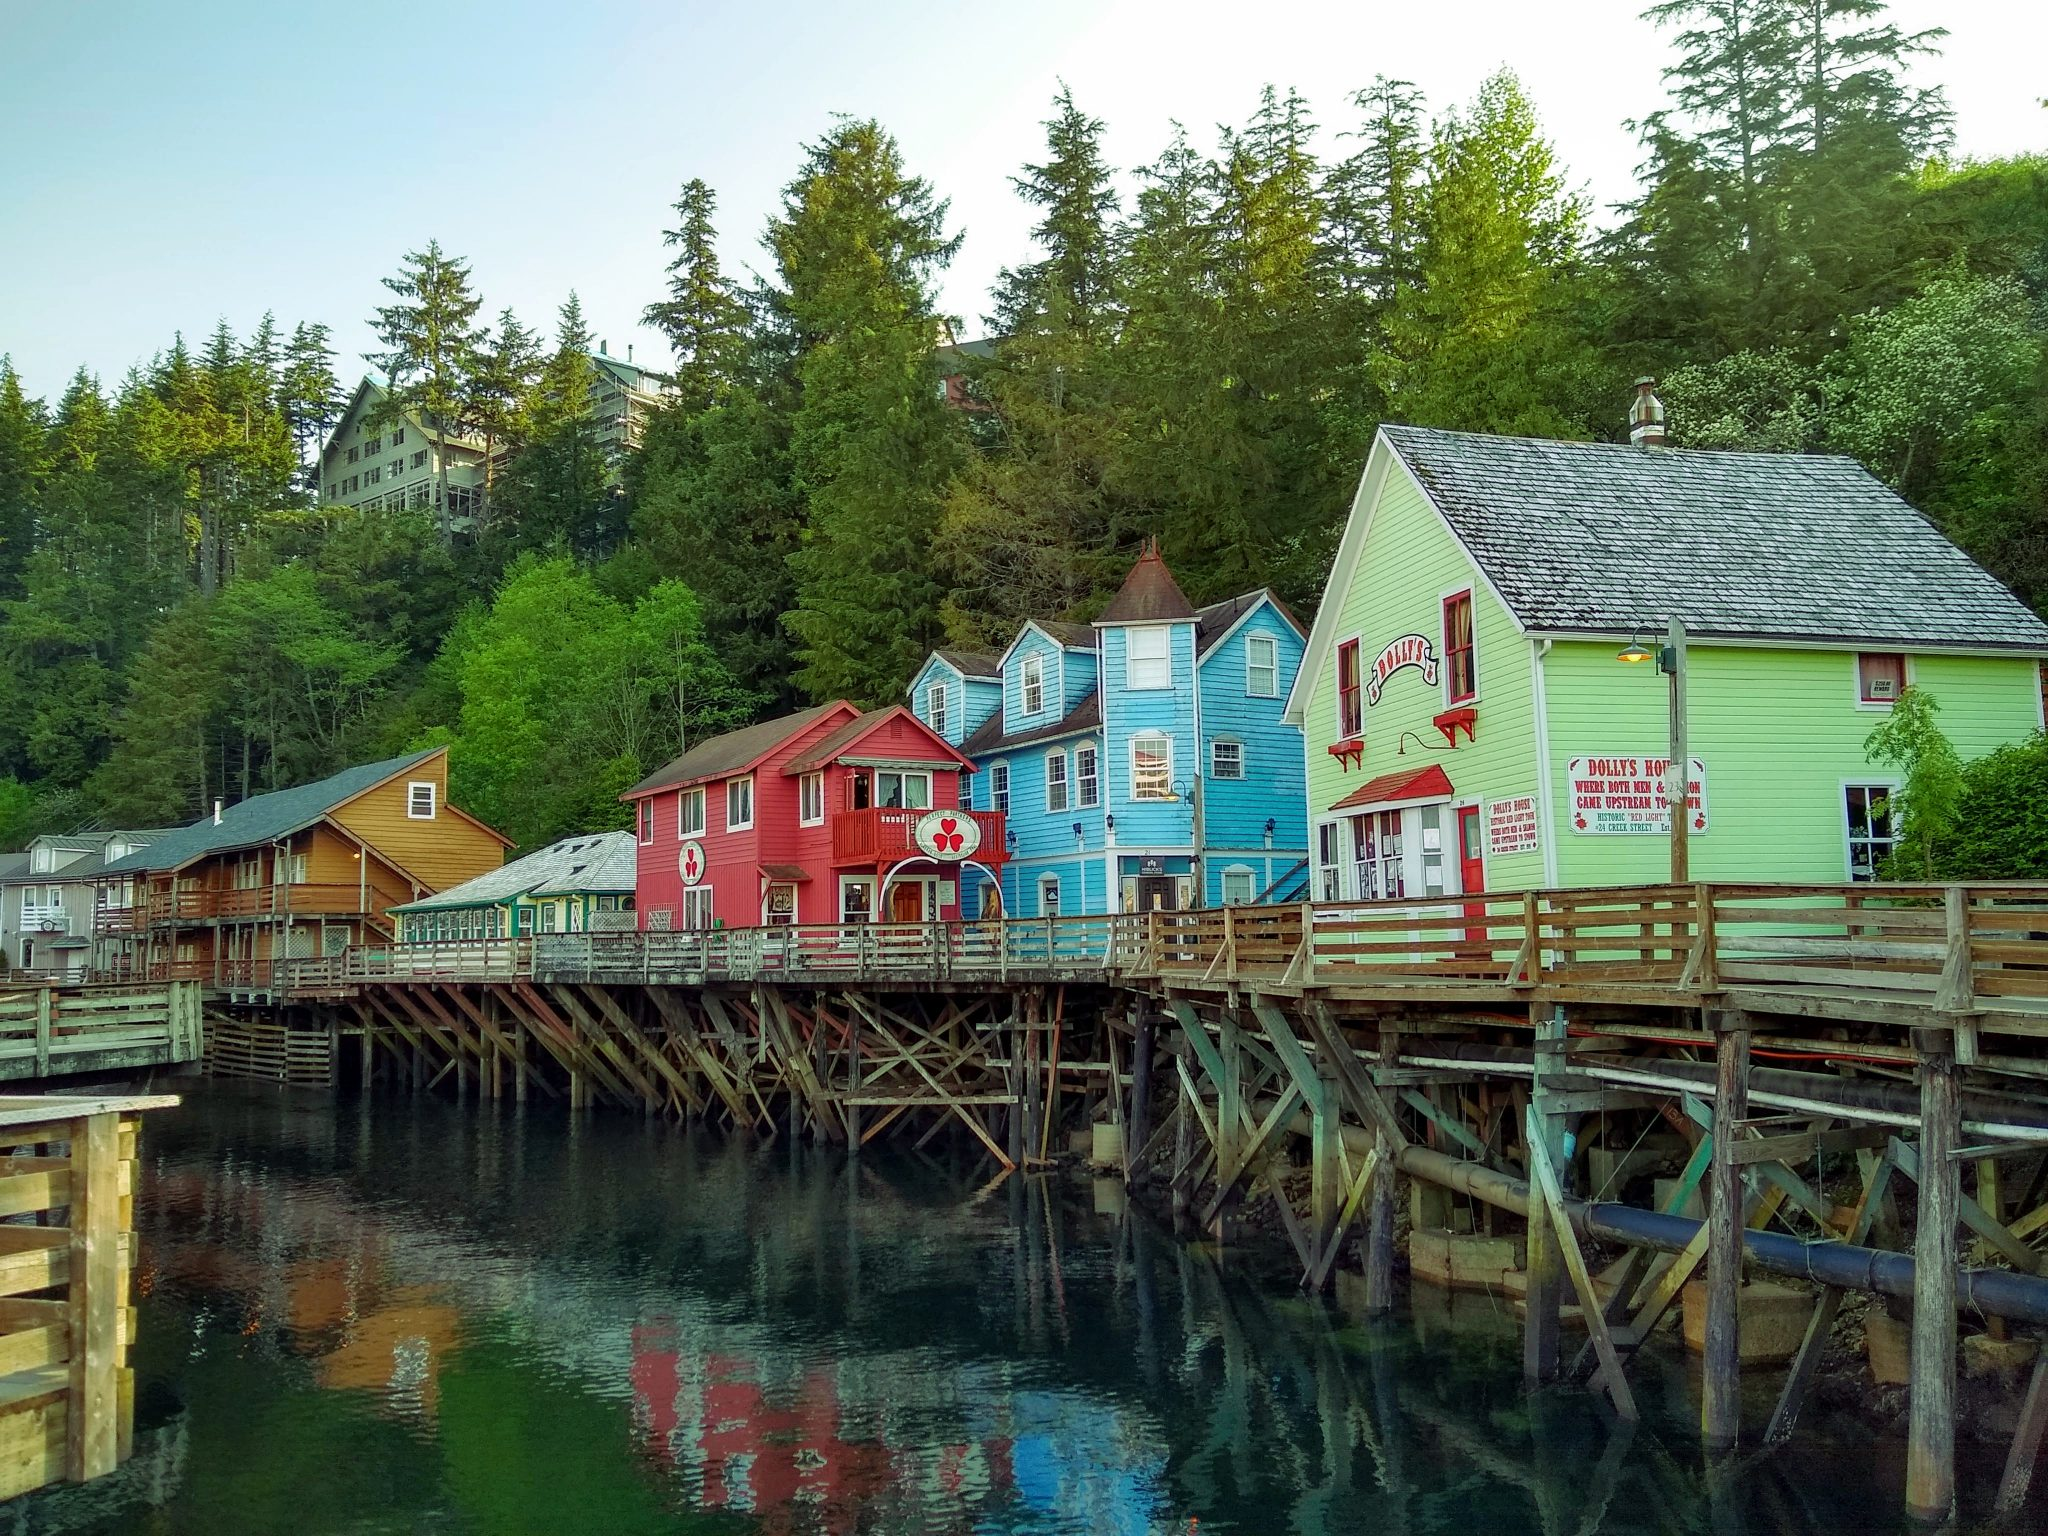 Several brightly colored historic wooden buildings are built on wooden piers above the water. The water is calm and the buildings are reflected in it. There are evergreen trees behind the buildings on the hill